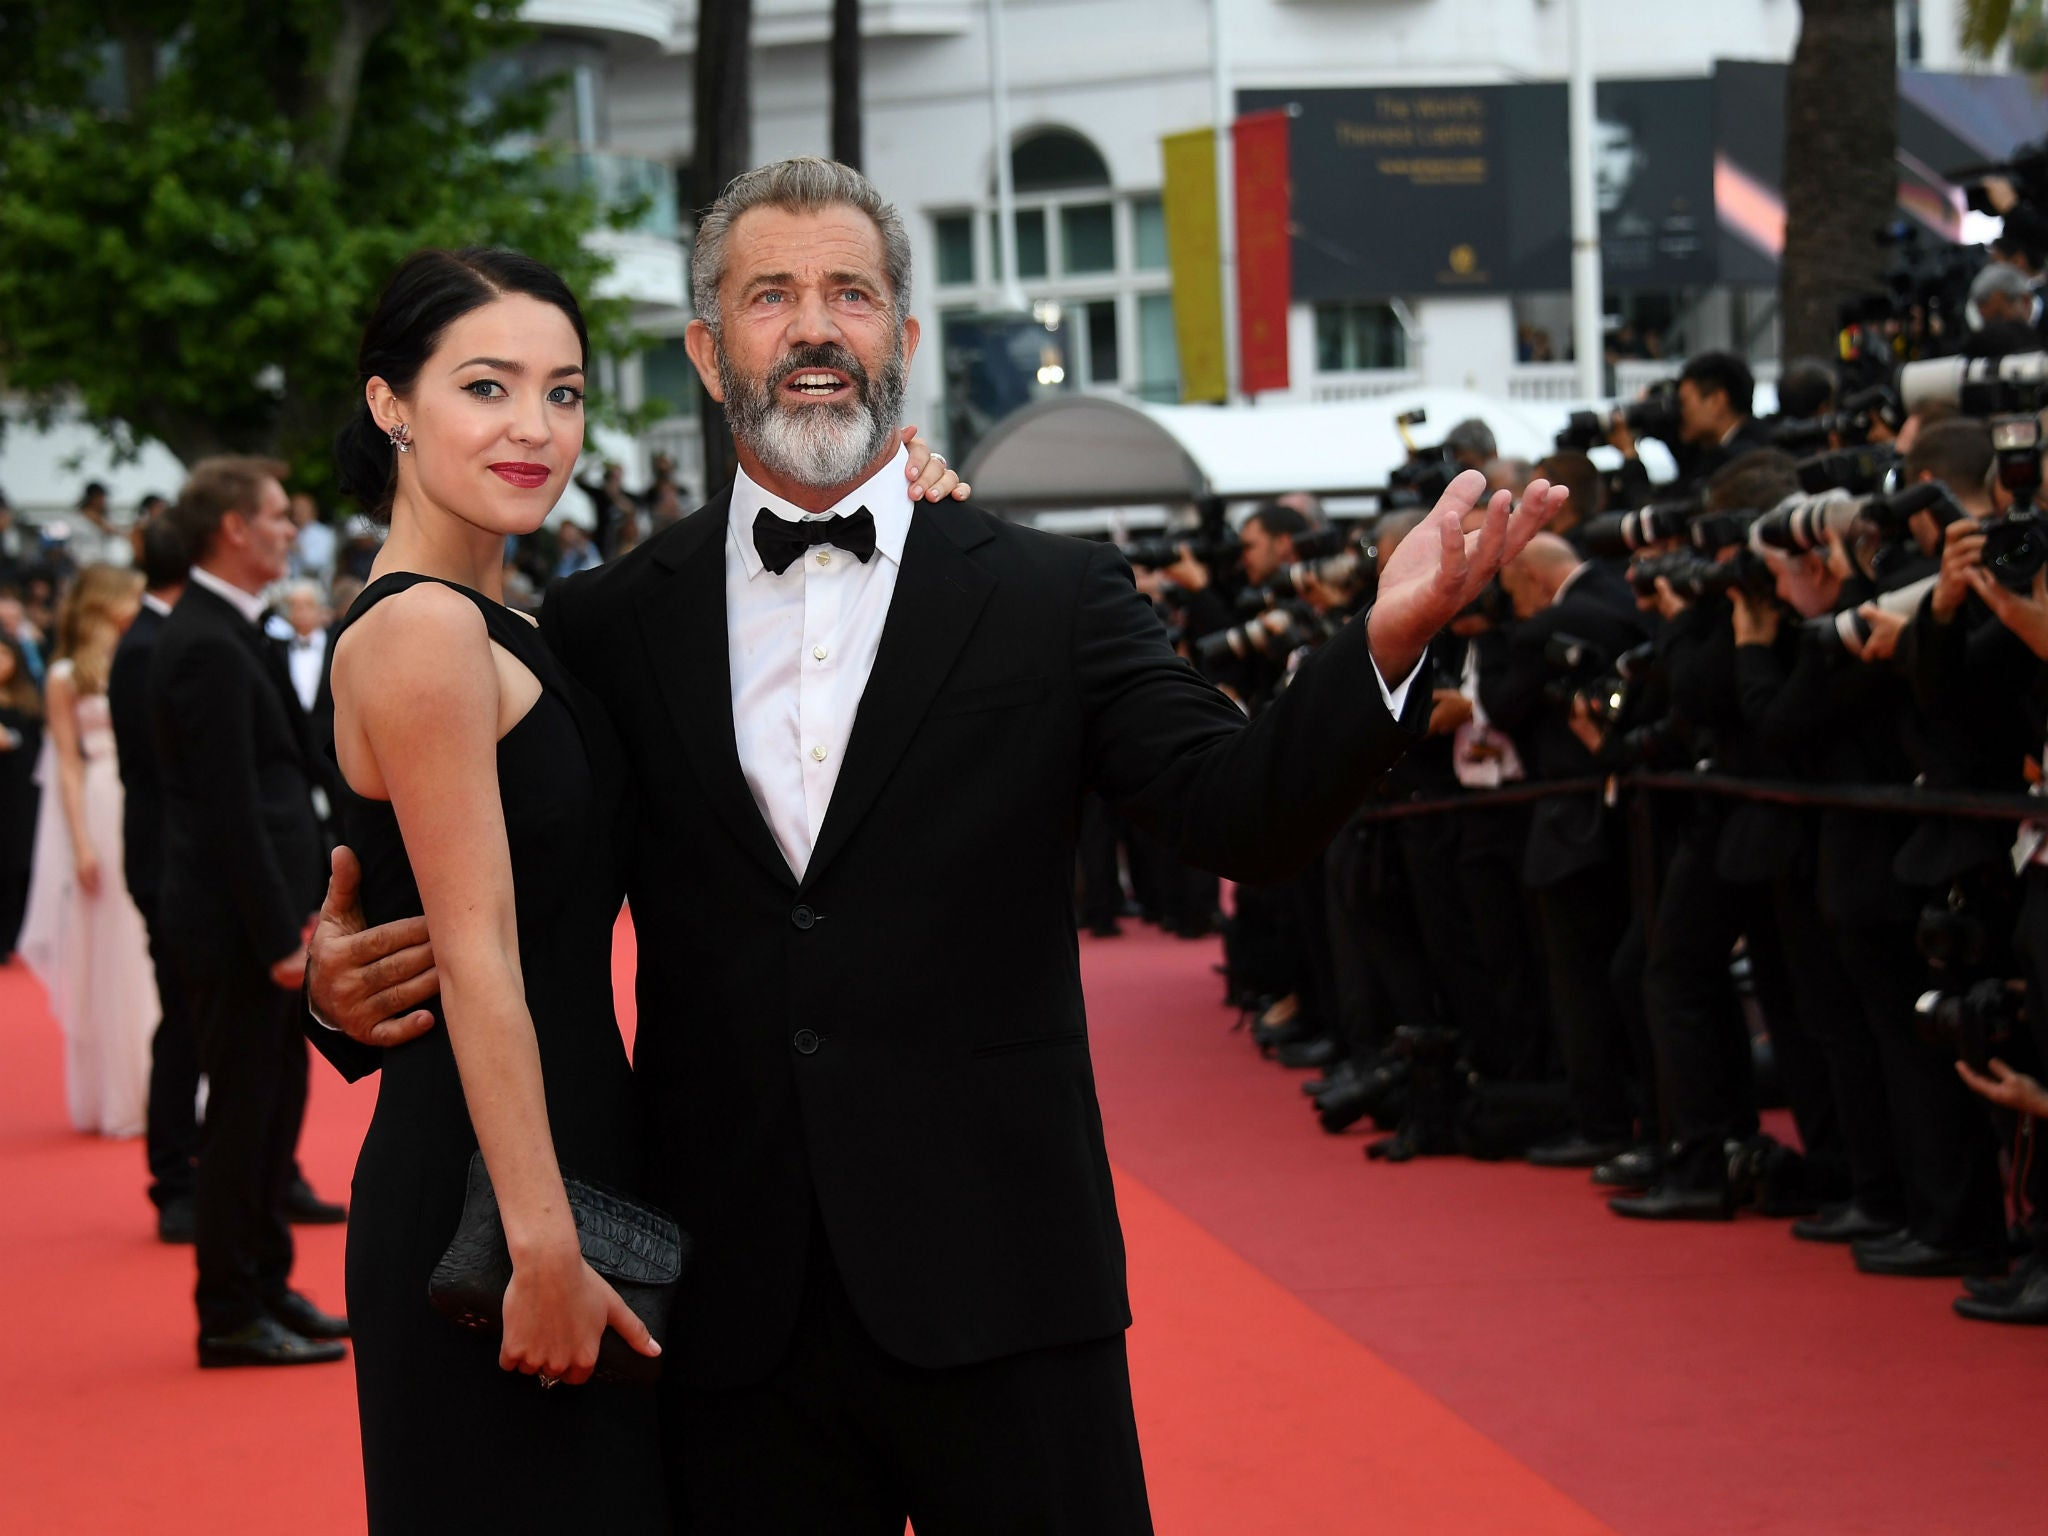 60-year-old Mel Gibson will be the father for the ninth time 09/17/2016 56